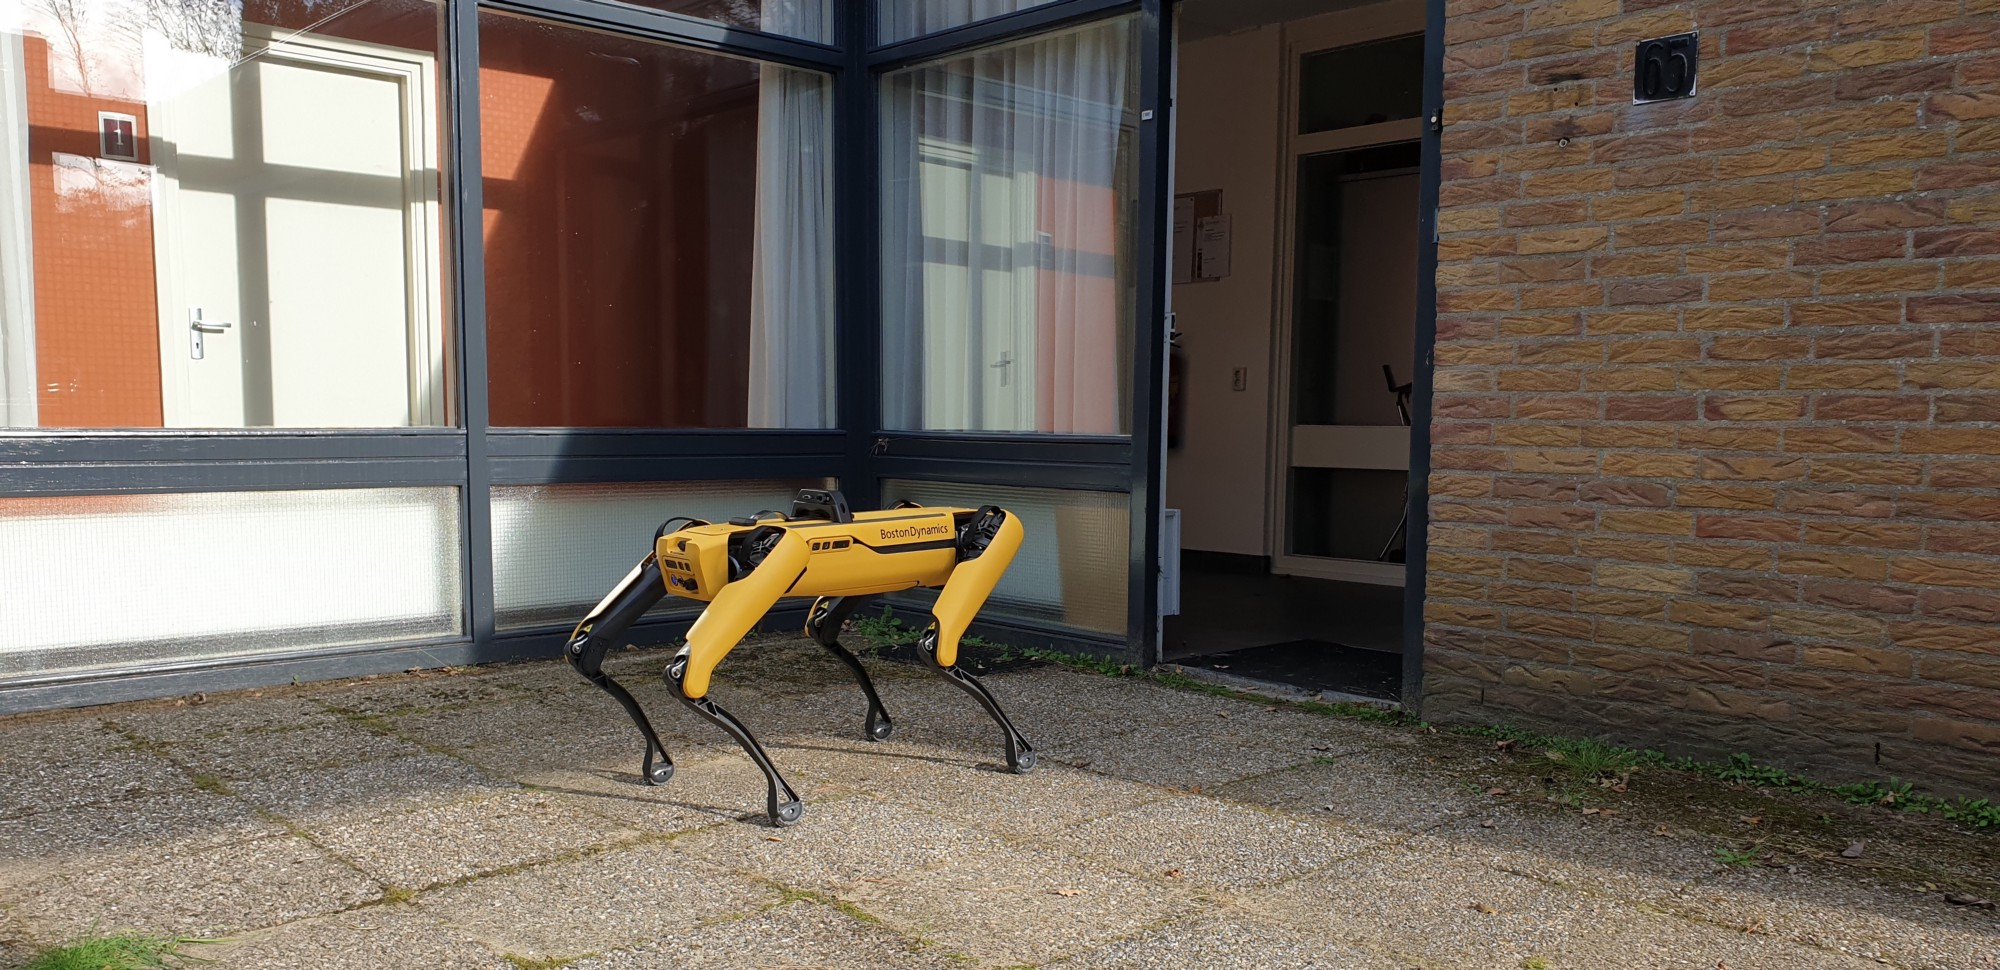 SPOT robot at TNO's research facilities, NL. Used with Permission.